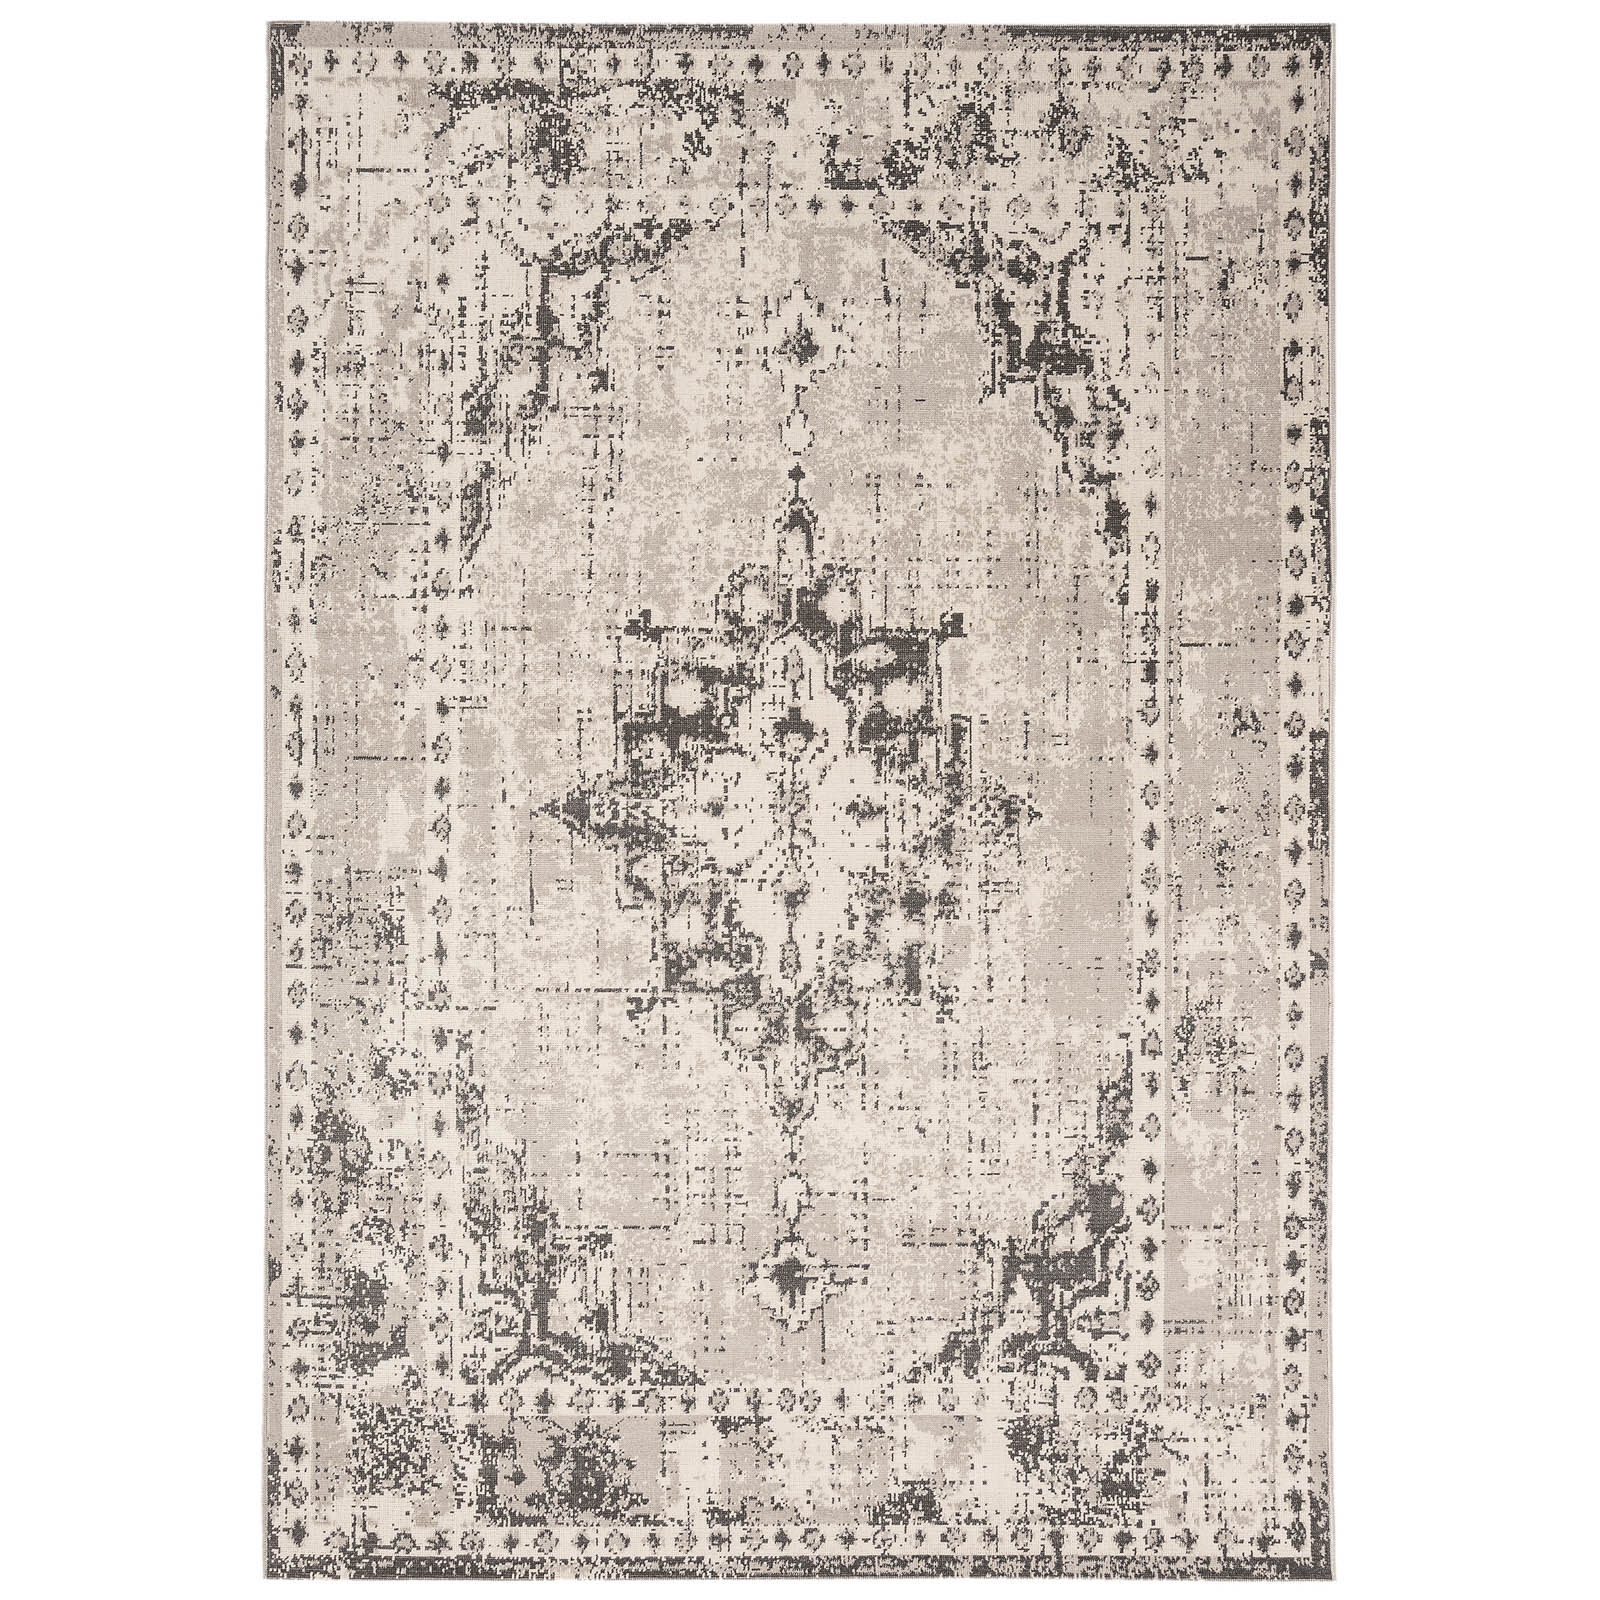 Revive Rugs RE02 in Grey